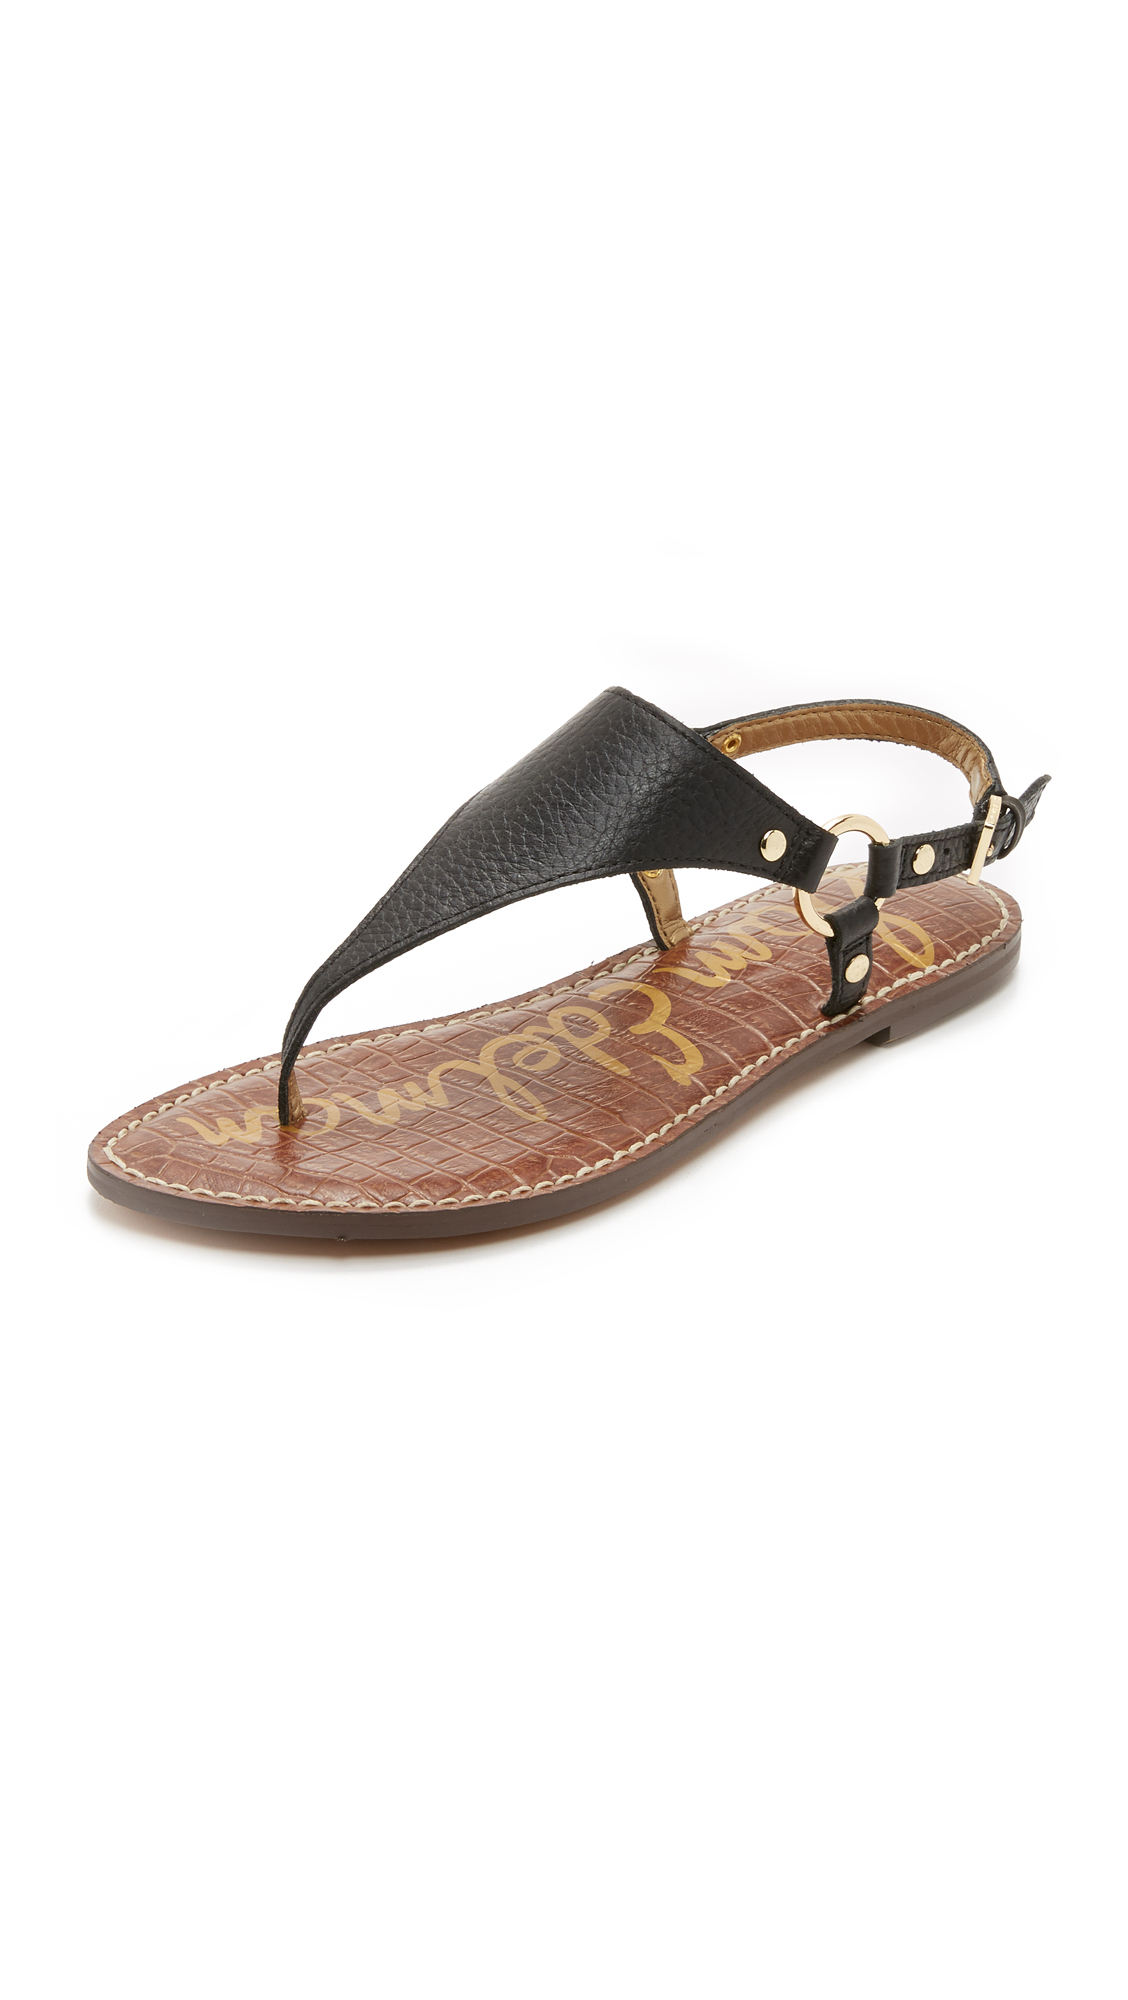 Sam Edelman Greta Thong Sandals - Black